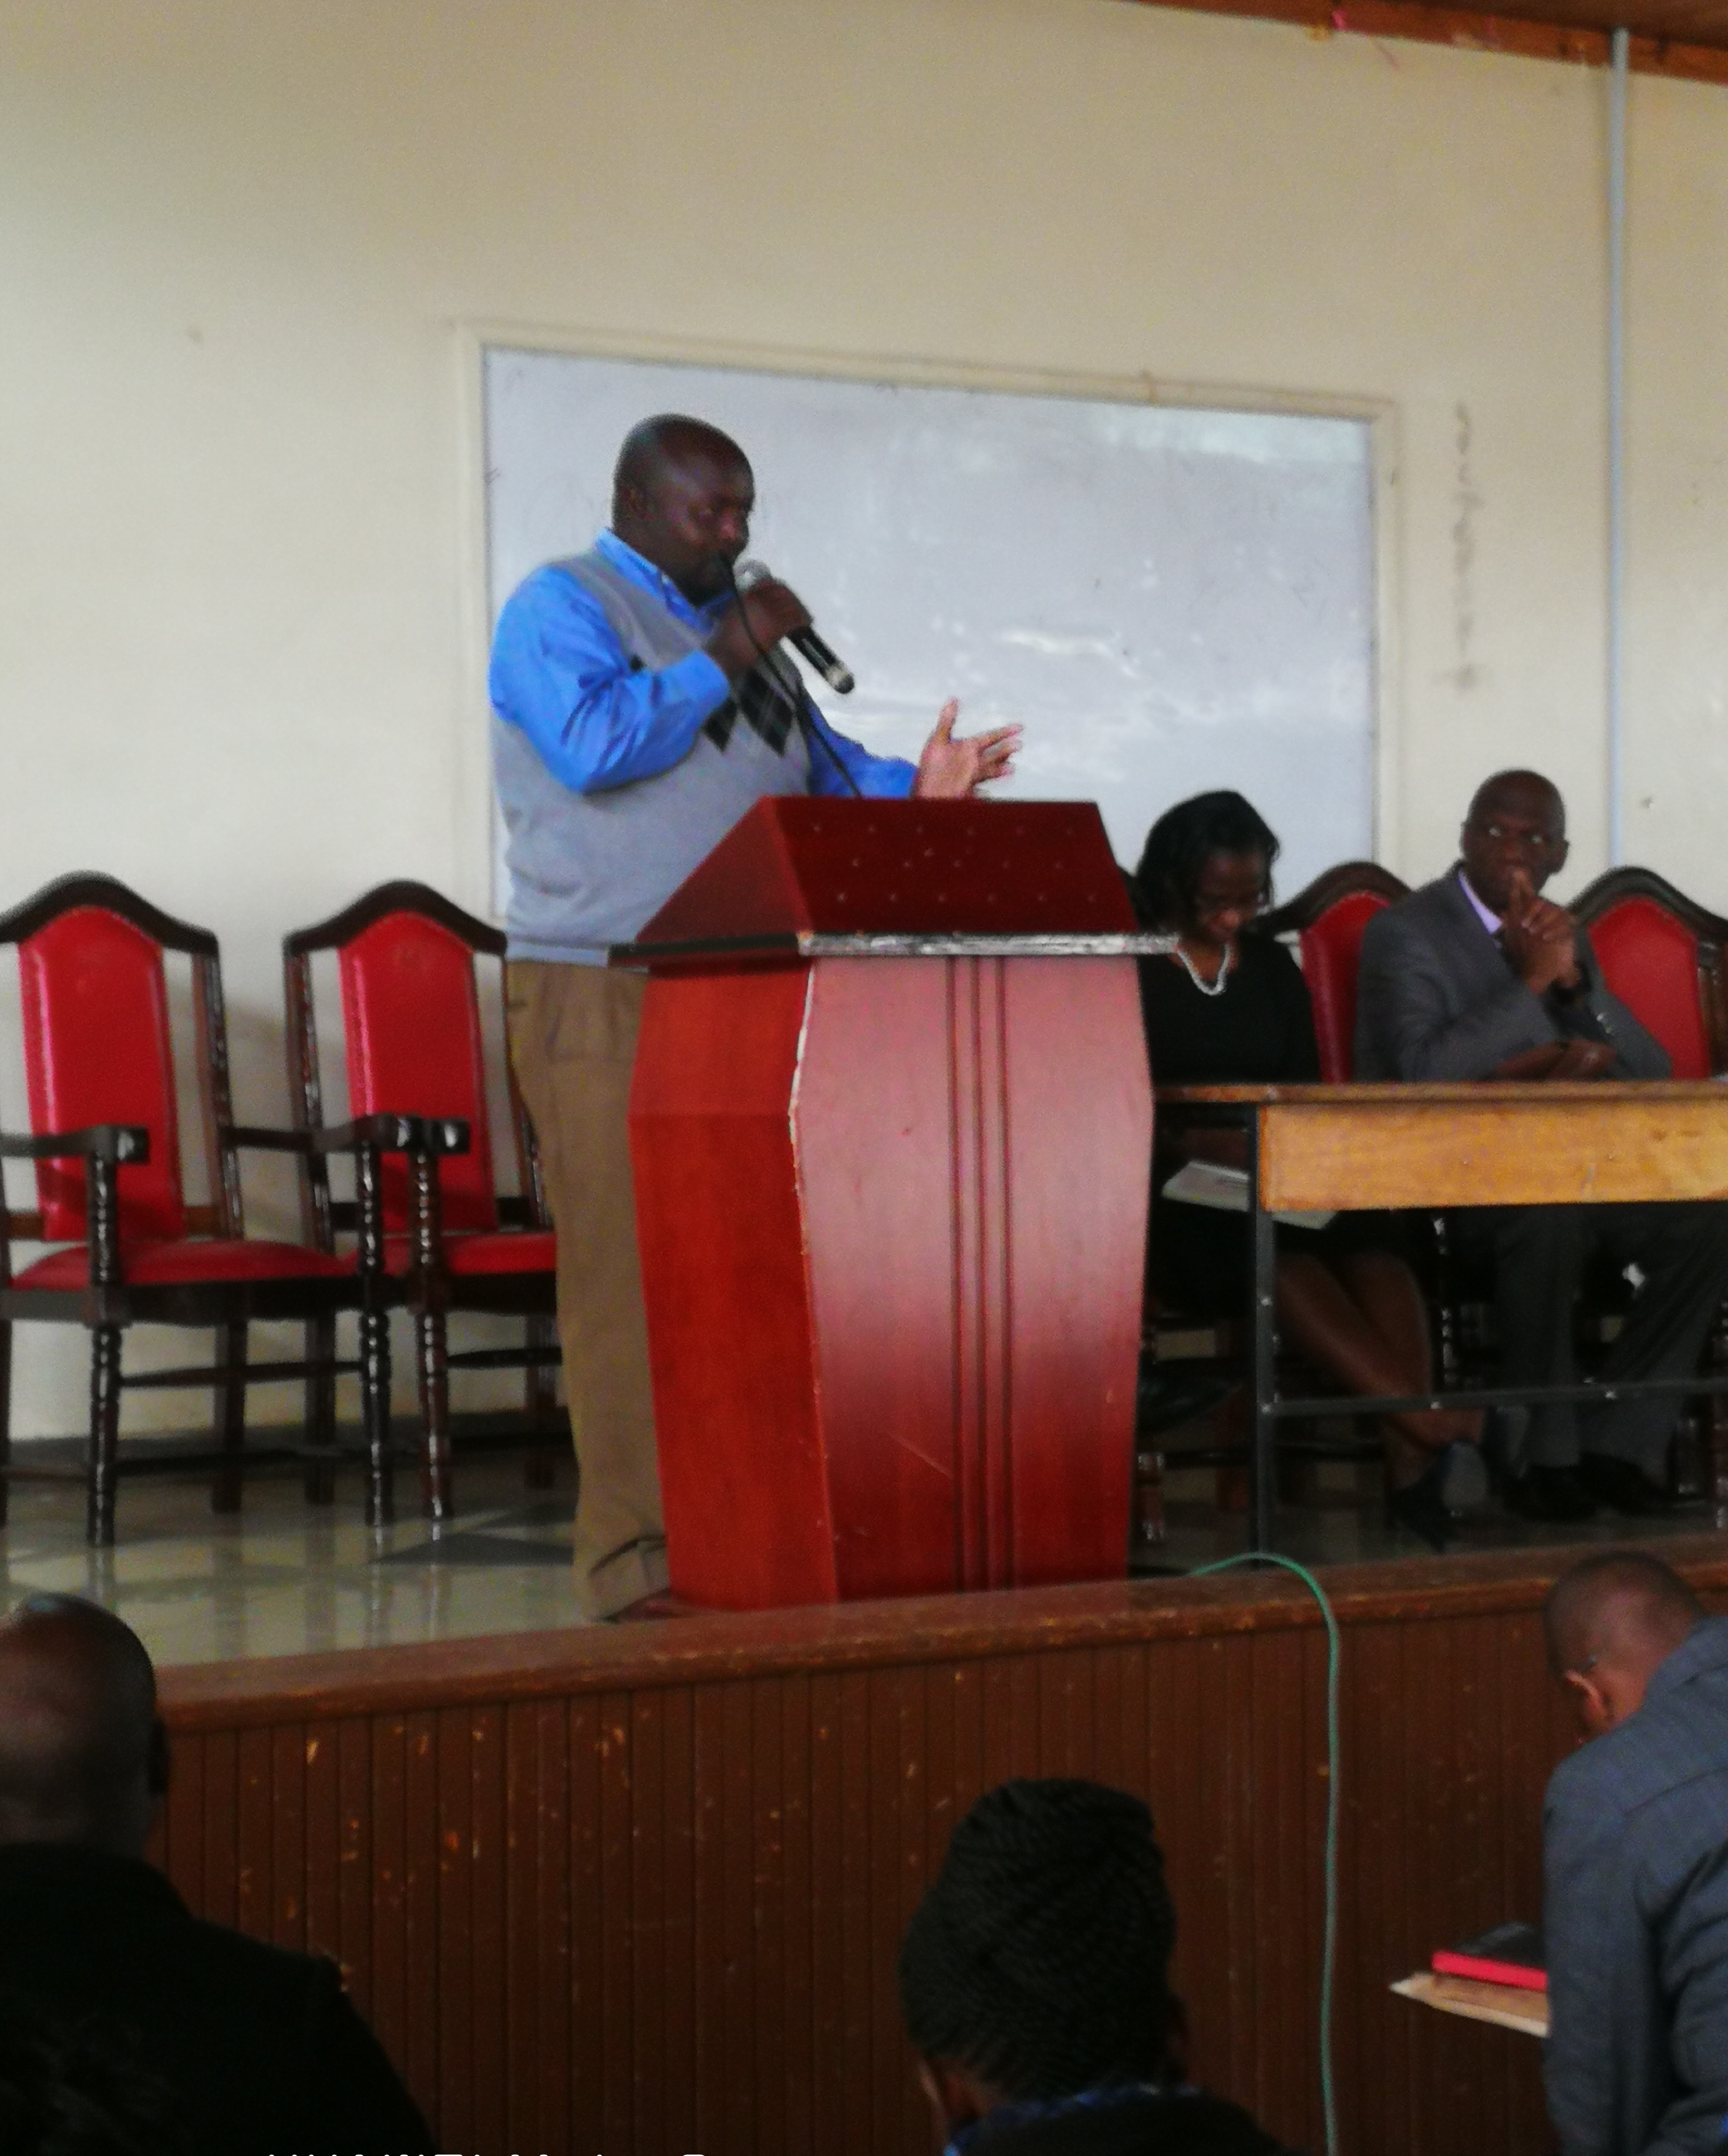 Mr. Patrick Opondo from K.U. admissions orienting the new students on K.U.s admission procedures.